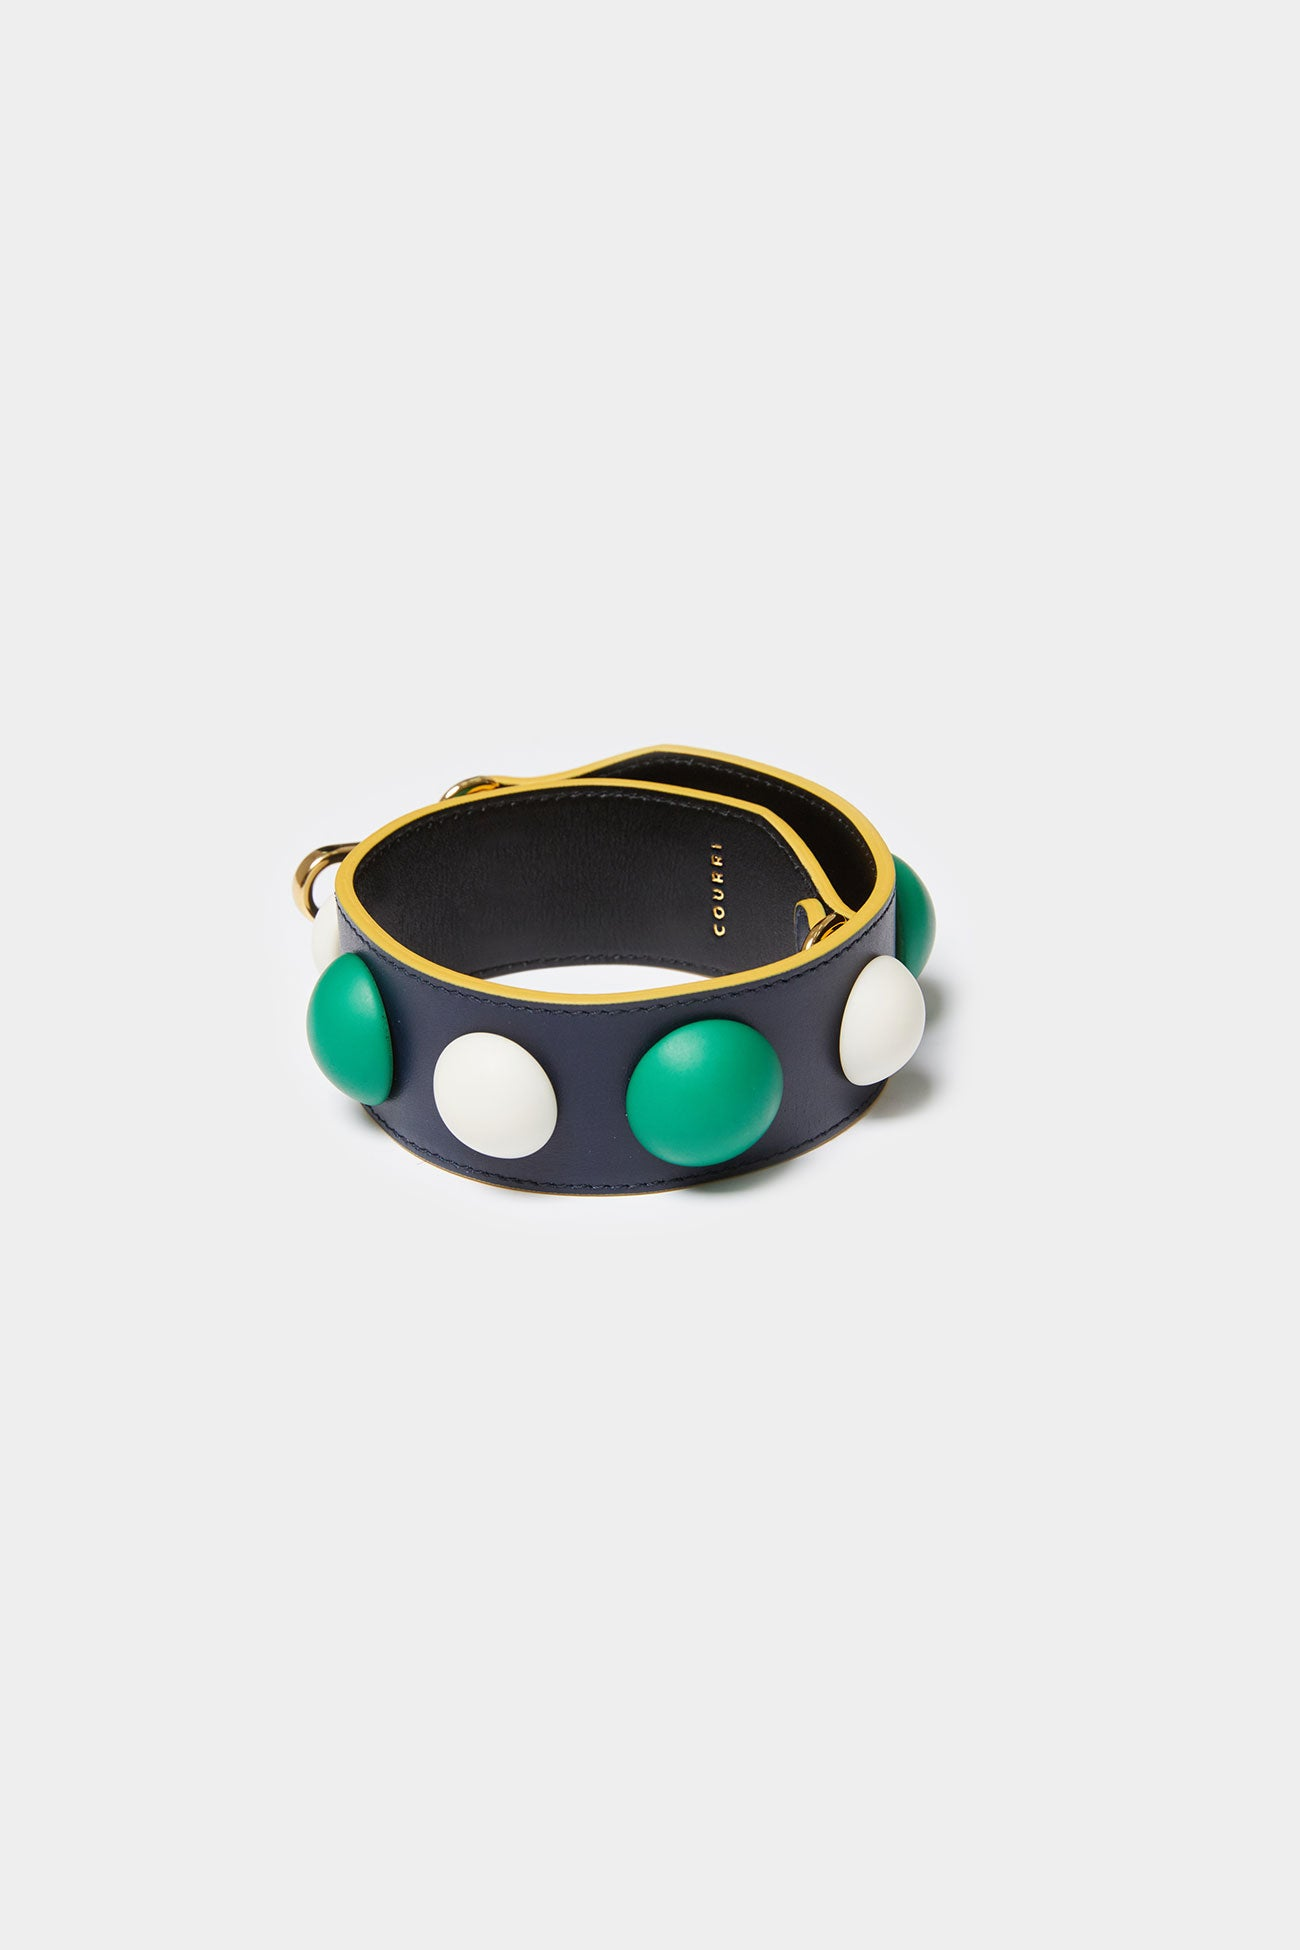 GREEN MULTI CODIE EMBELLISHED LEATHER STRAP [Short]